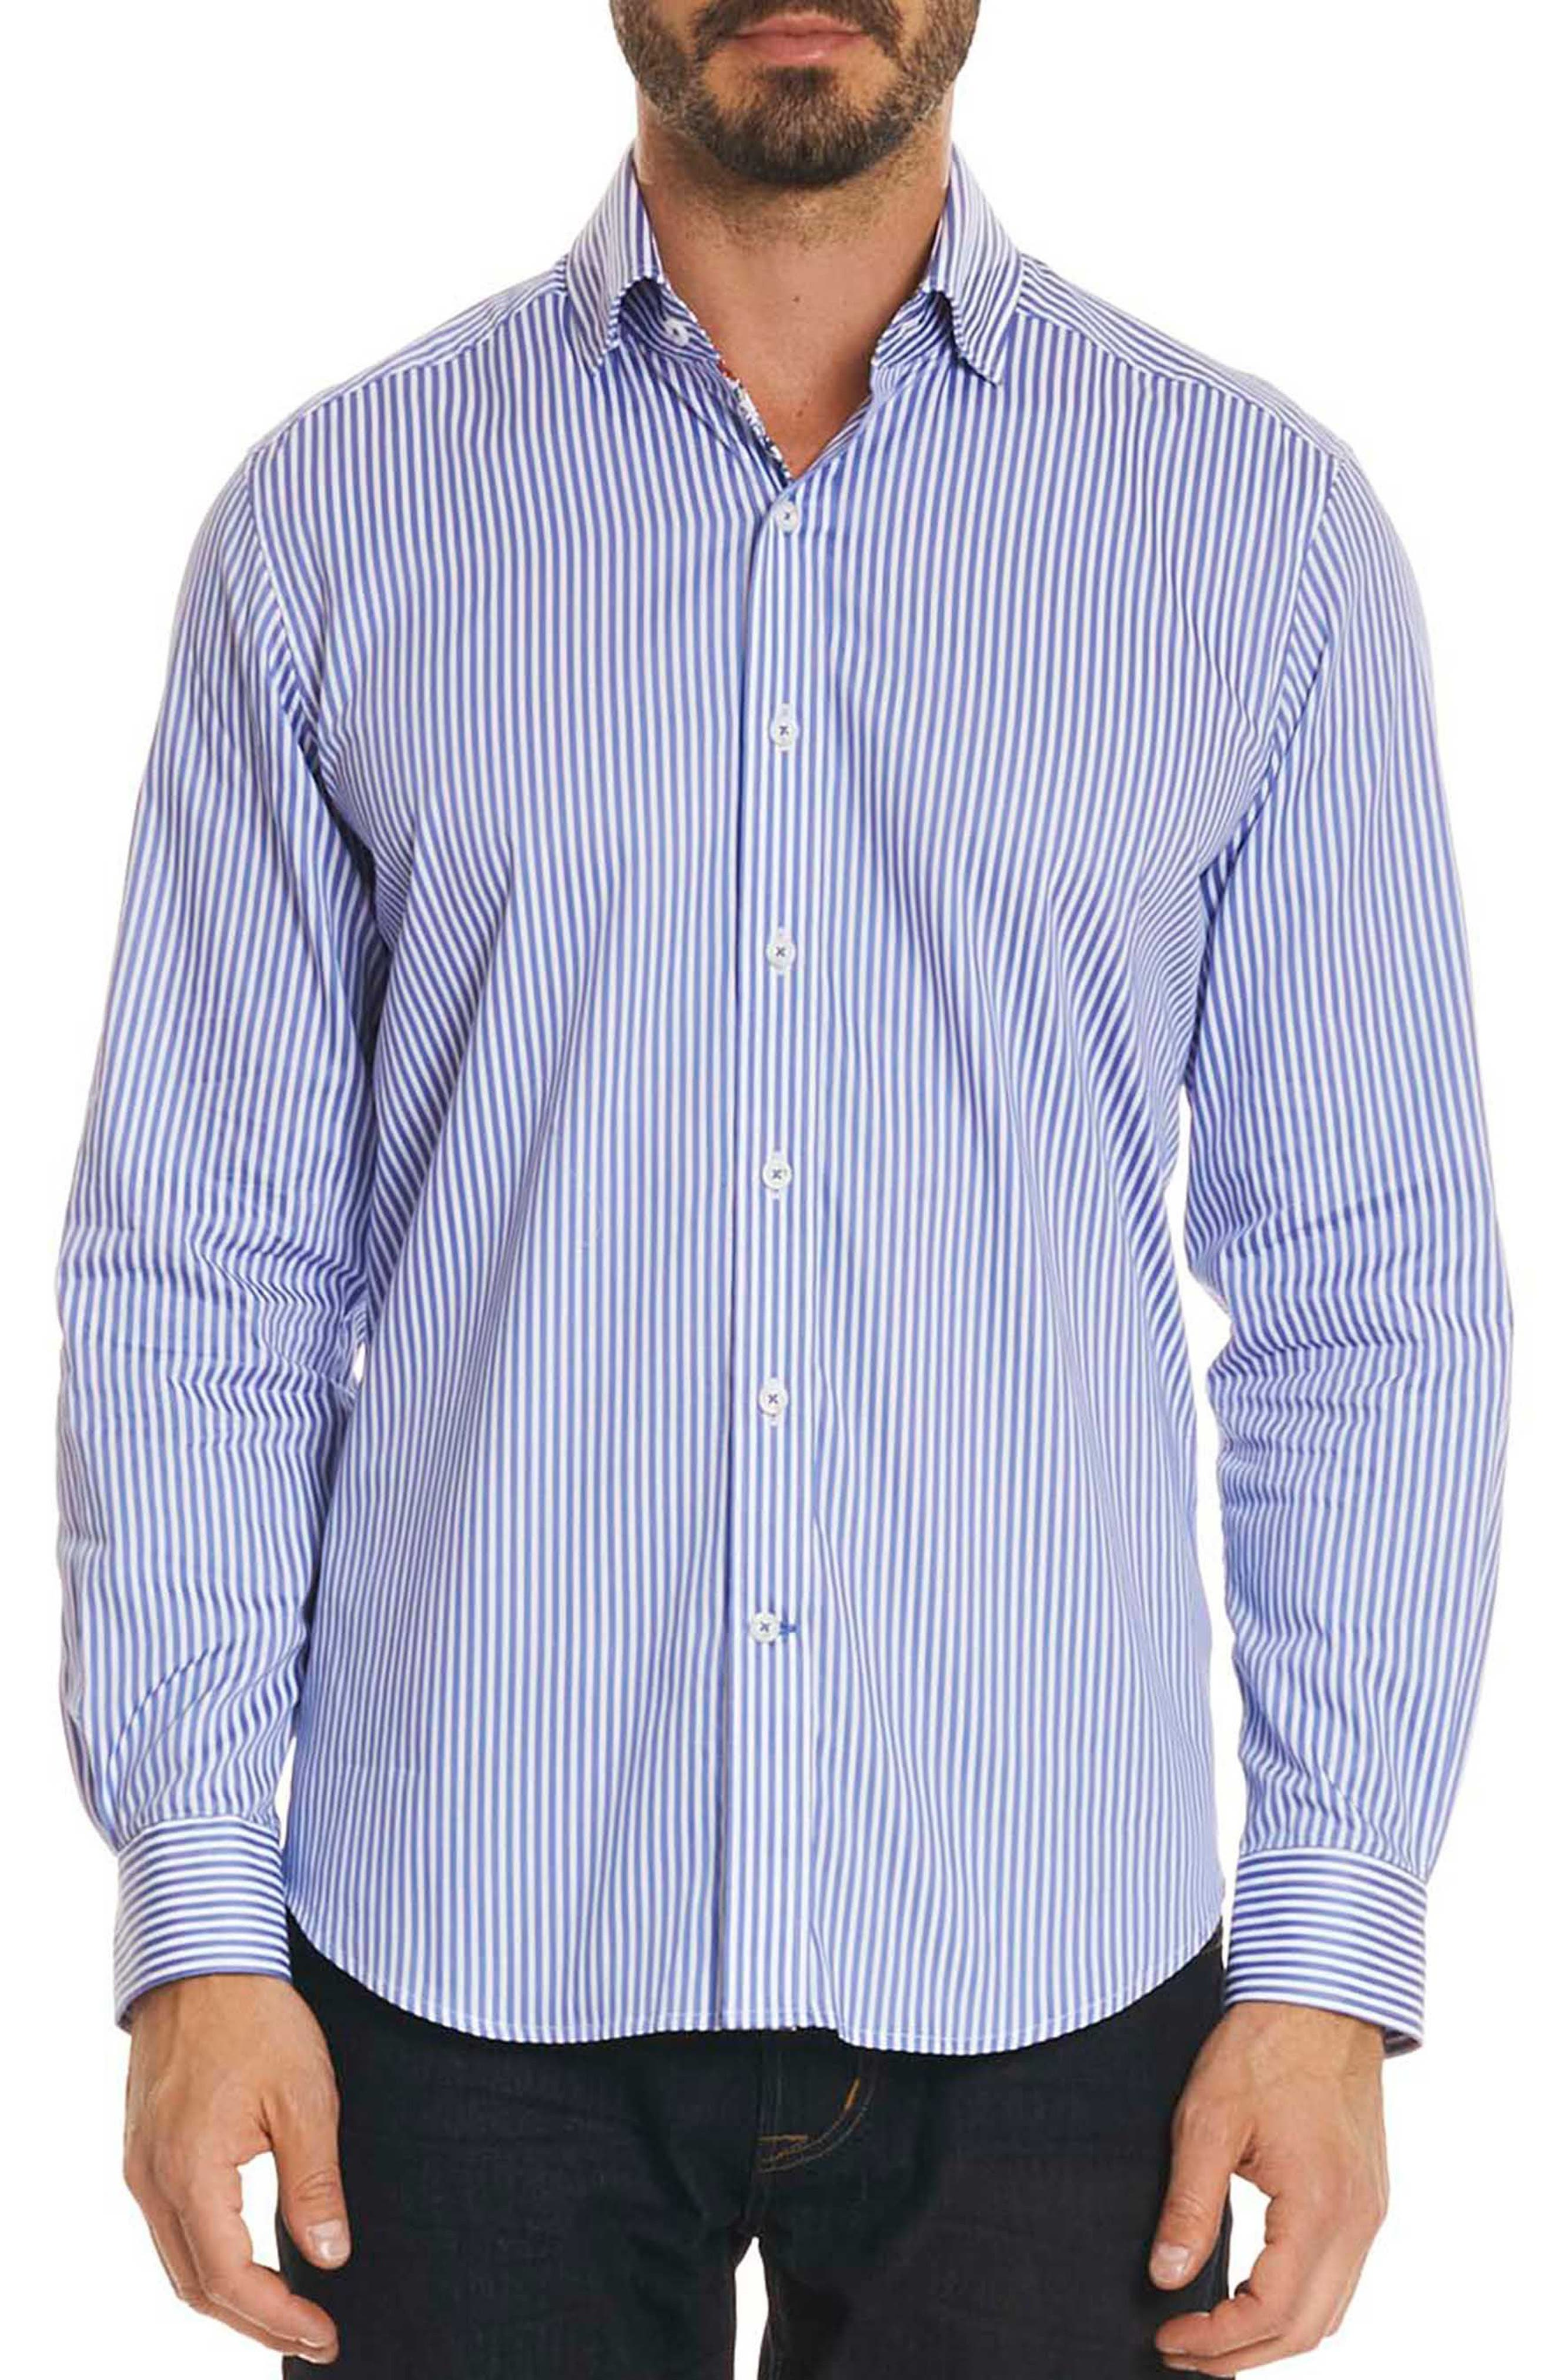 Luther Classic Fit Stripe Sport Shirt,                             Main thumbnail 1, color,                             Steel